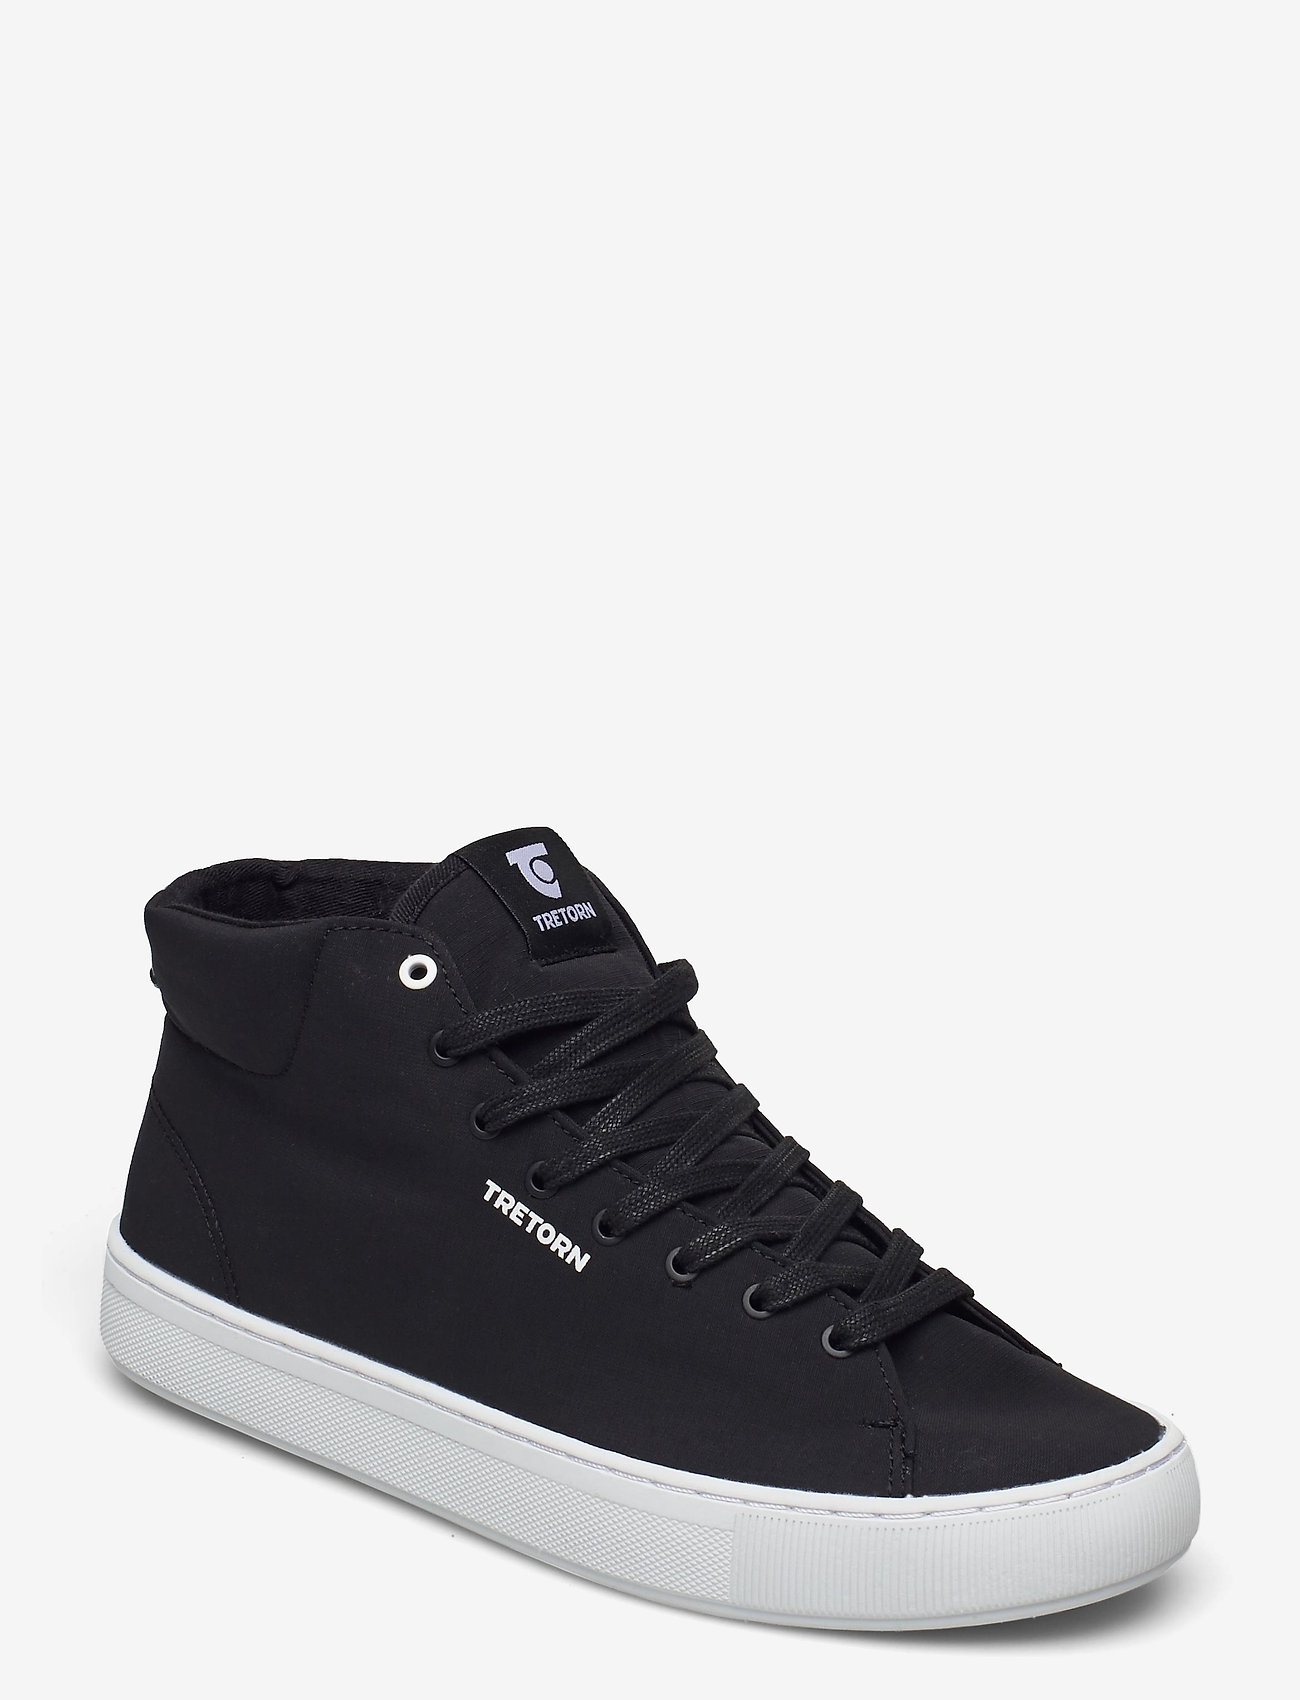 Tretorn - TOURNAMENT HI OCEAN NET - höga sneakers - 010/black - 0